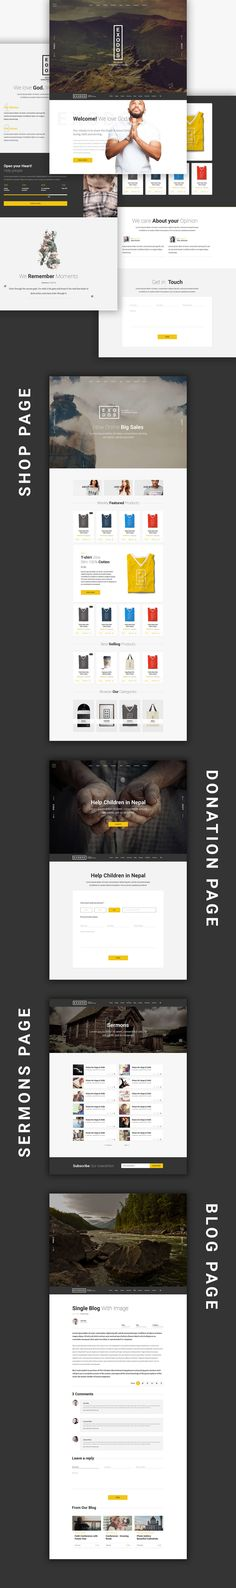 Buy Exodos - Church WordPress Theme by modeltheme on ThemeForest. Want to create an incredible Church/Nonprofit WordPress website? Sick of testing and evaluating themes? Wordpress Premium, Object Drawing, Non Profit, Wordpress Theme, The Incredibles, Social Media, 3d, Website, Blog